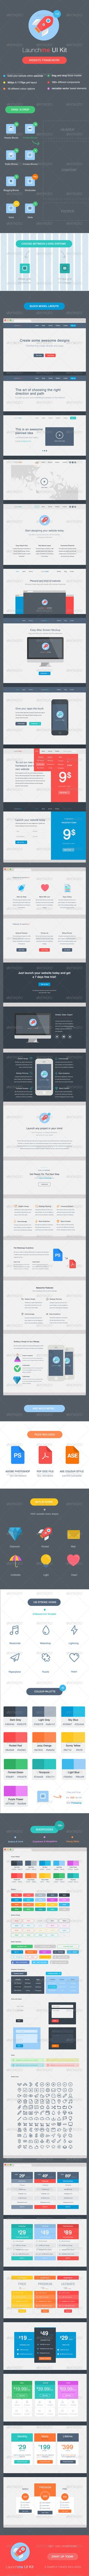 Launchme Website Wireframe UI Kit Template PSD #userinterface Download: http://graphicriver.net/item/launchme-website-wireframe-ui-kit/7386364?ref=ksioks